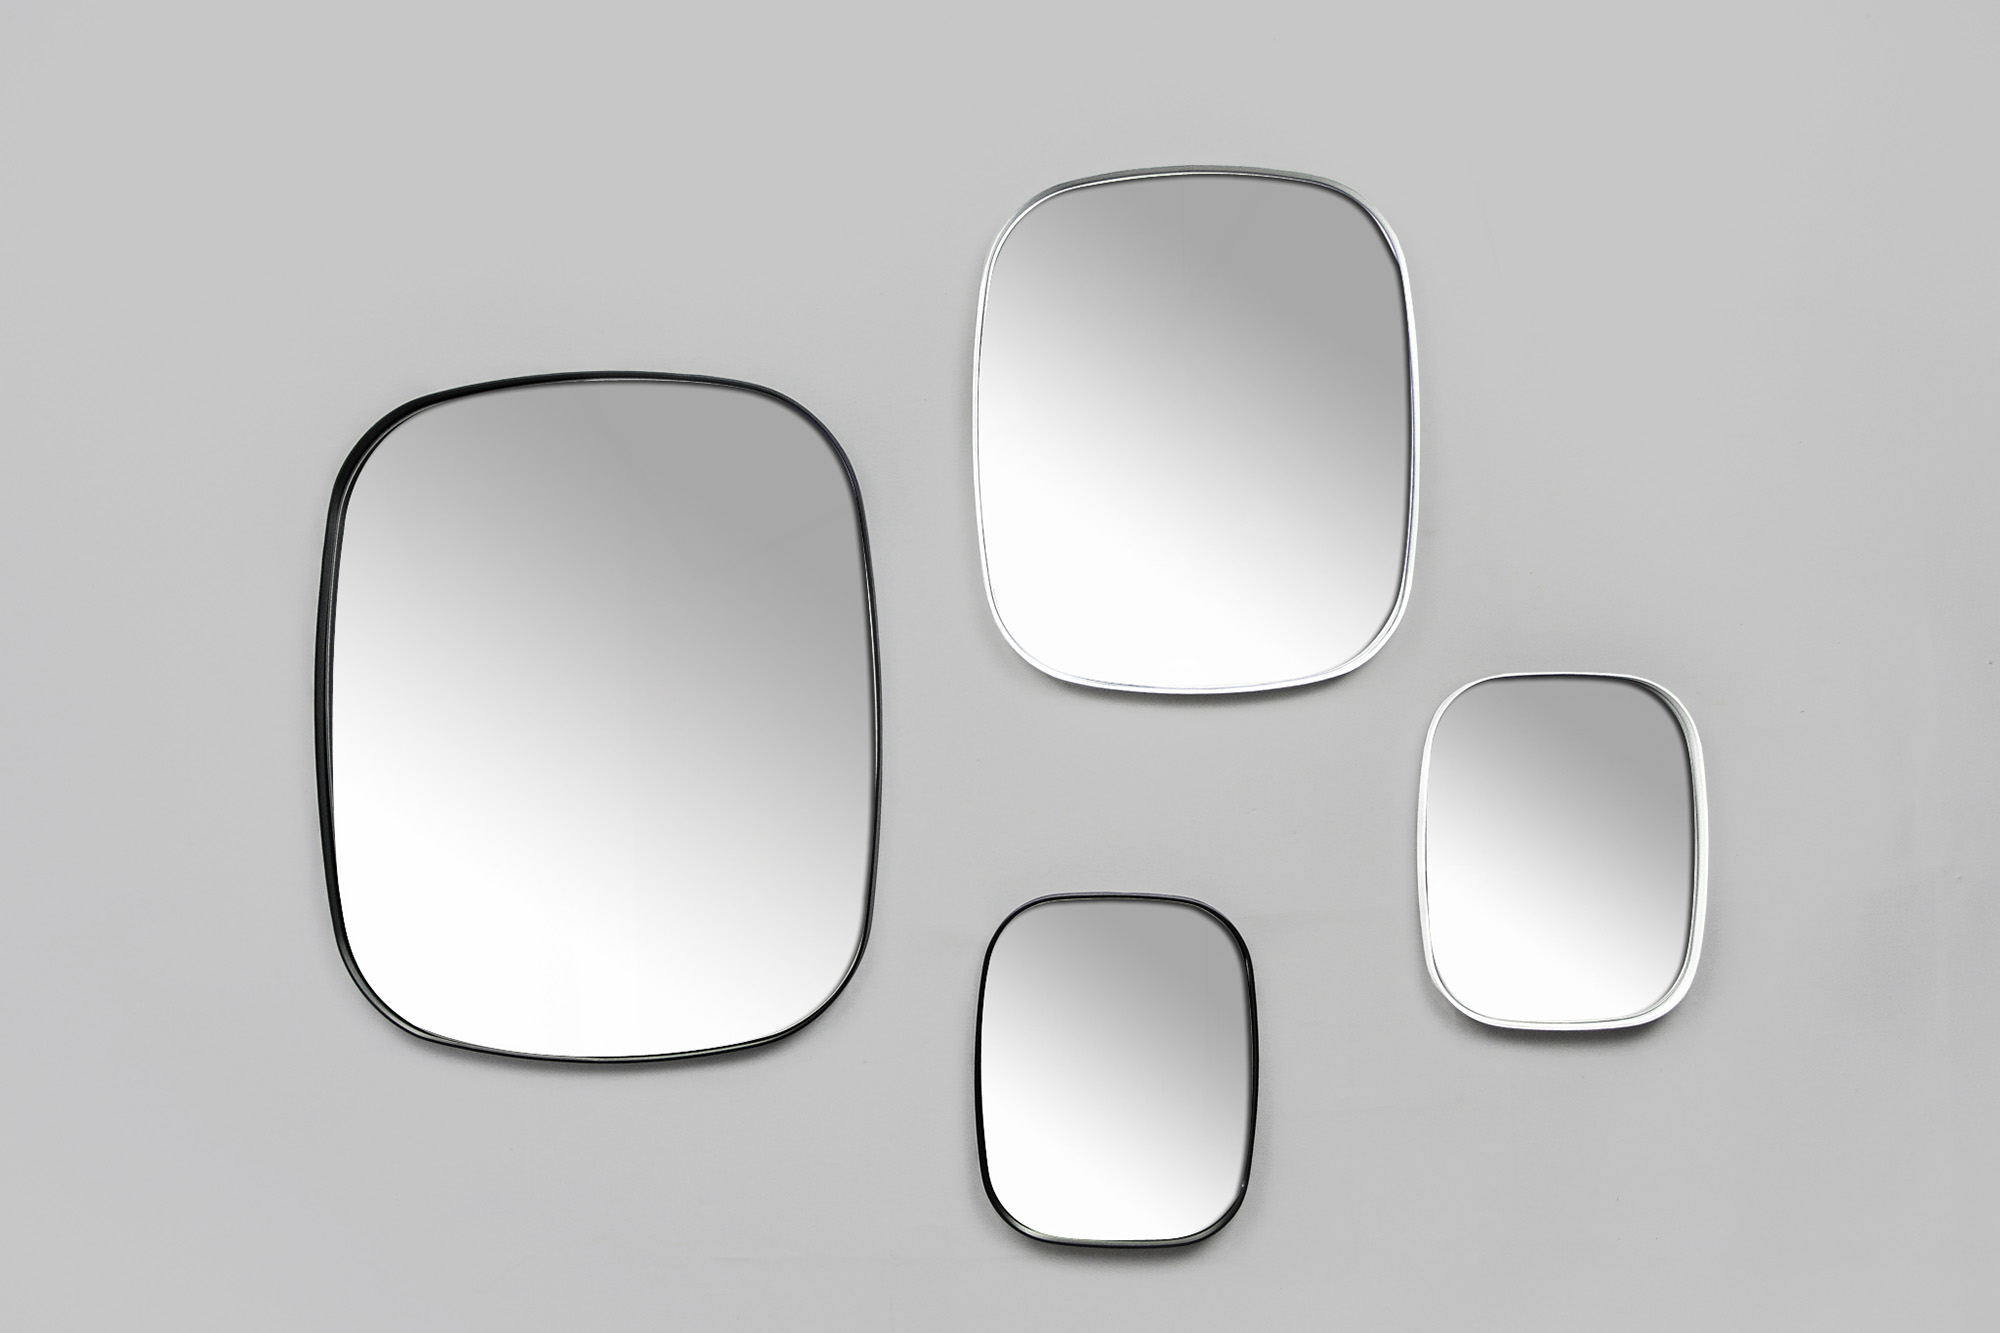 Pool-mirrors-01_grey_2000x1333